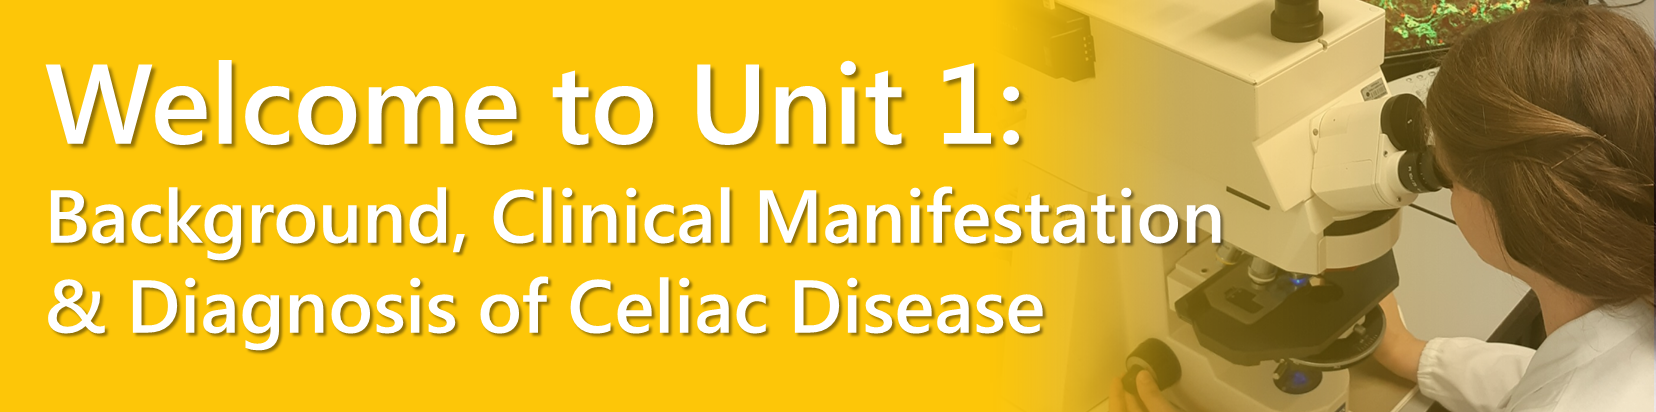 Welcome to Unit 1 Background, Clinical Manifestation & Diagnosis of Celiac Disease